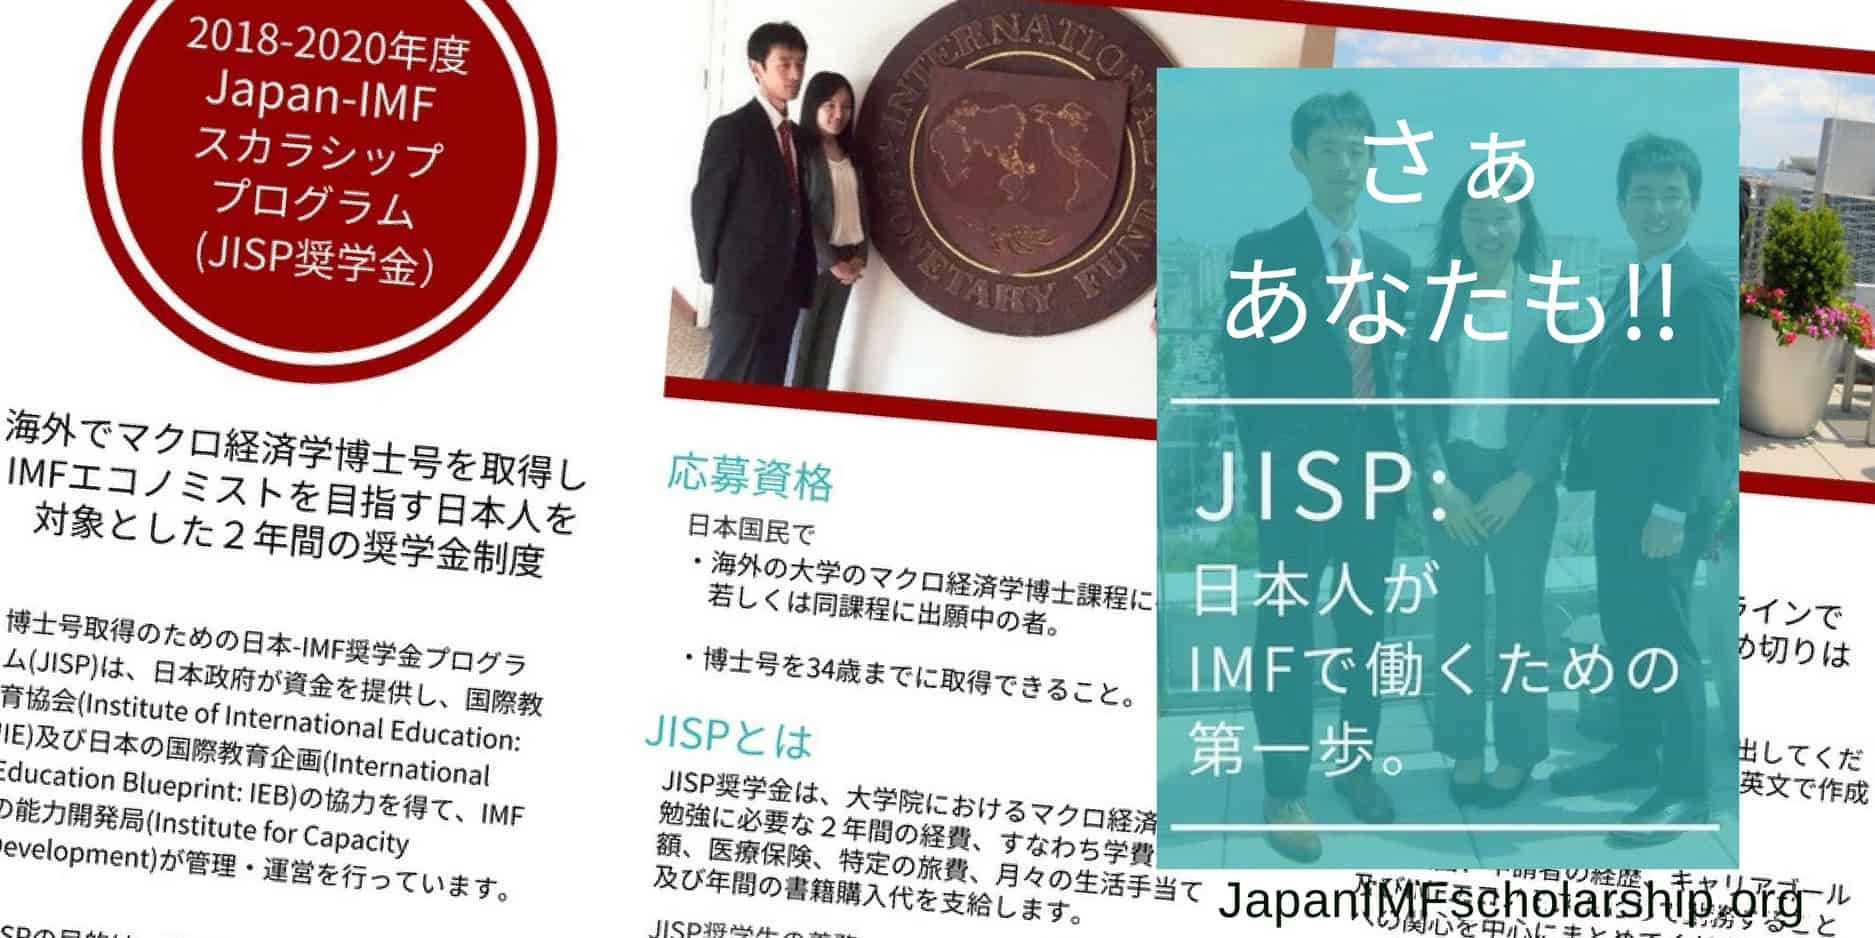 jisp web-fb jisp brochure 2018-2020